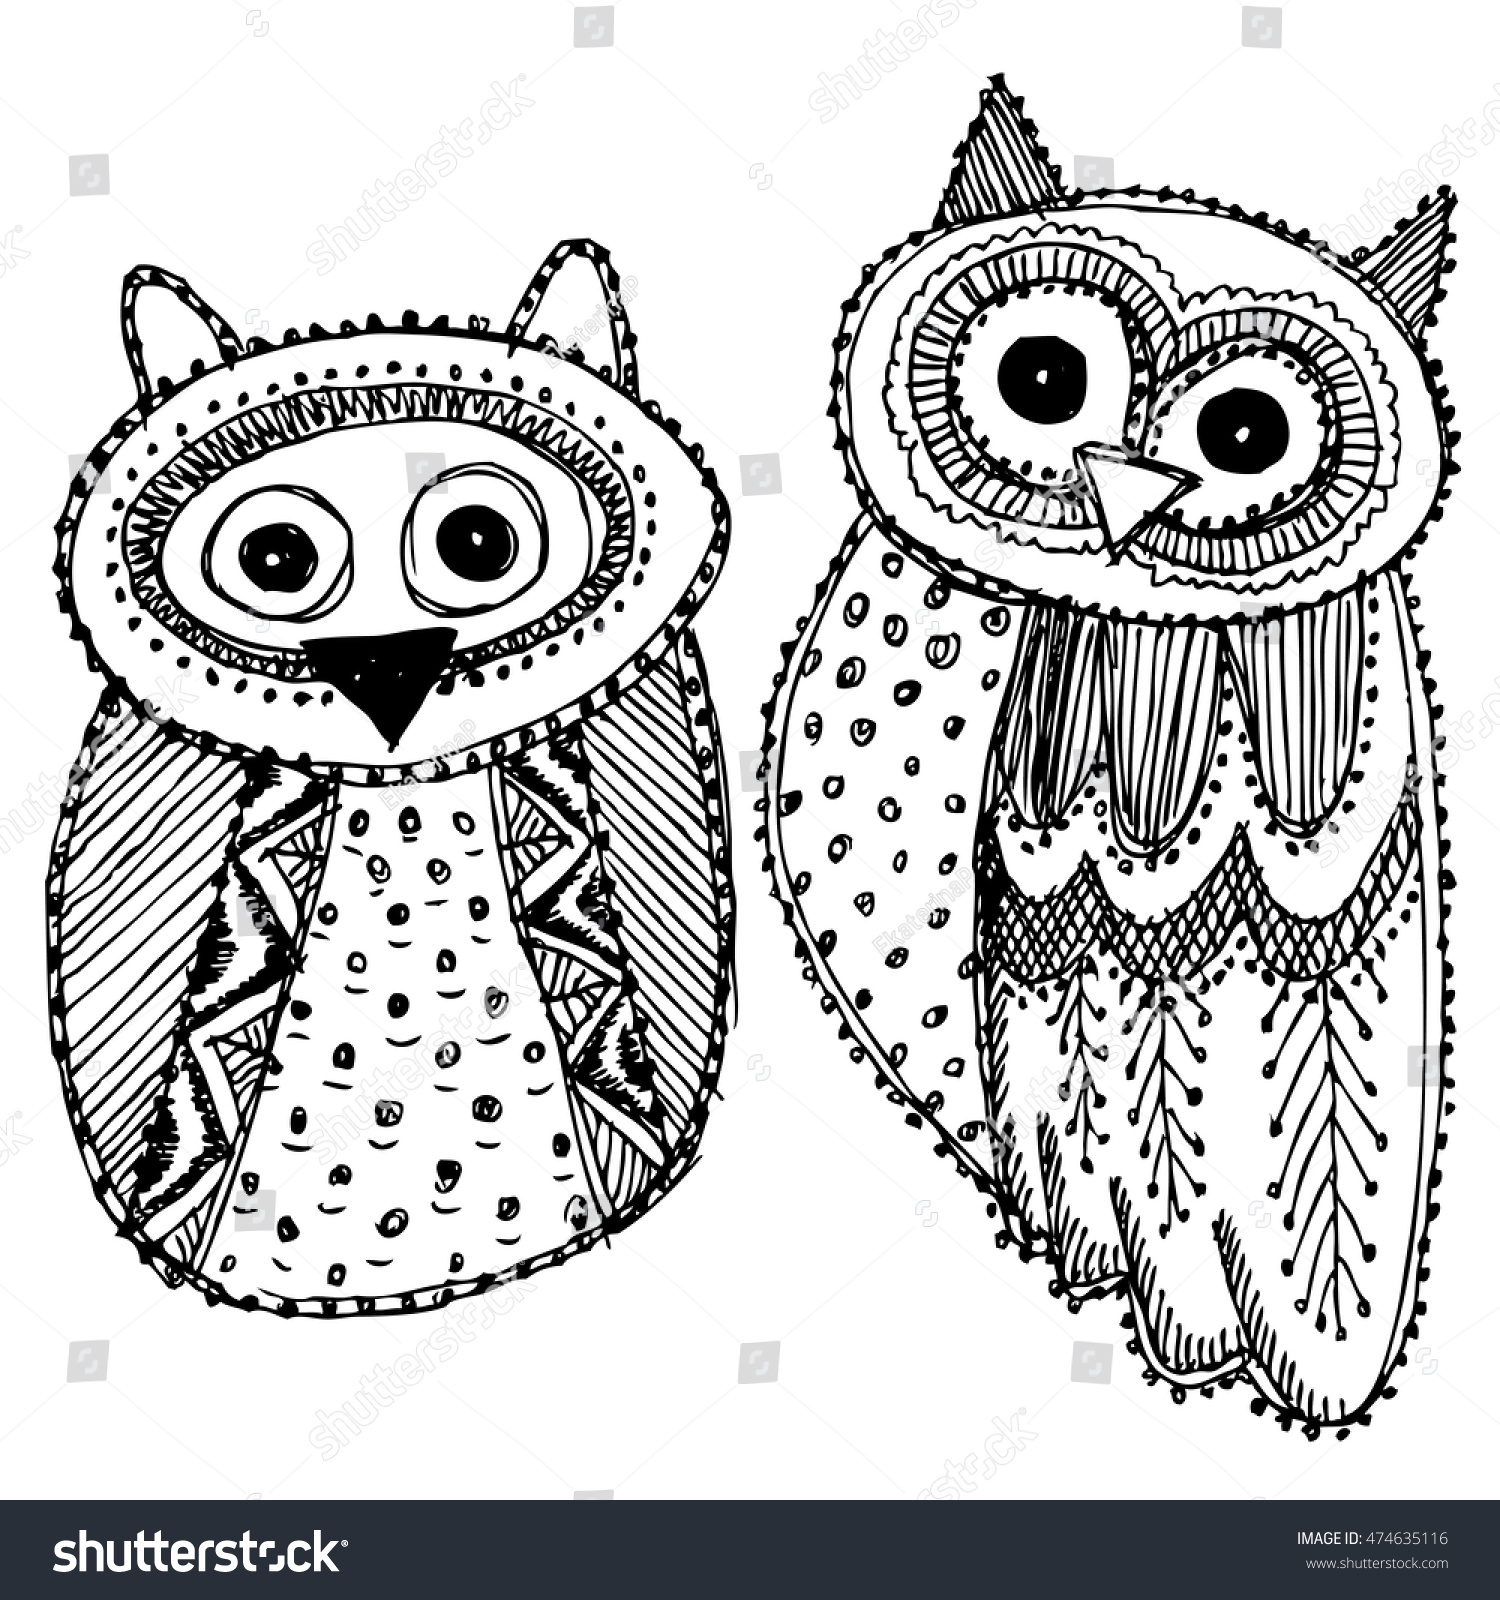 Cute owl sketches